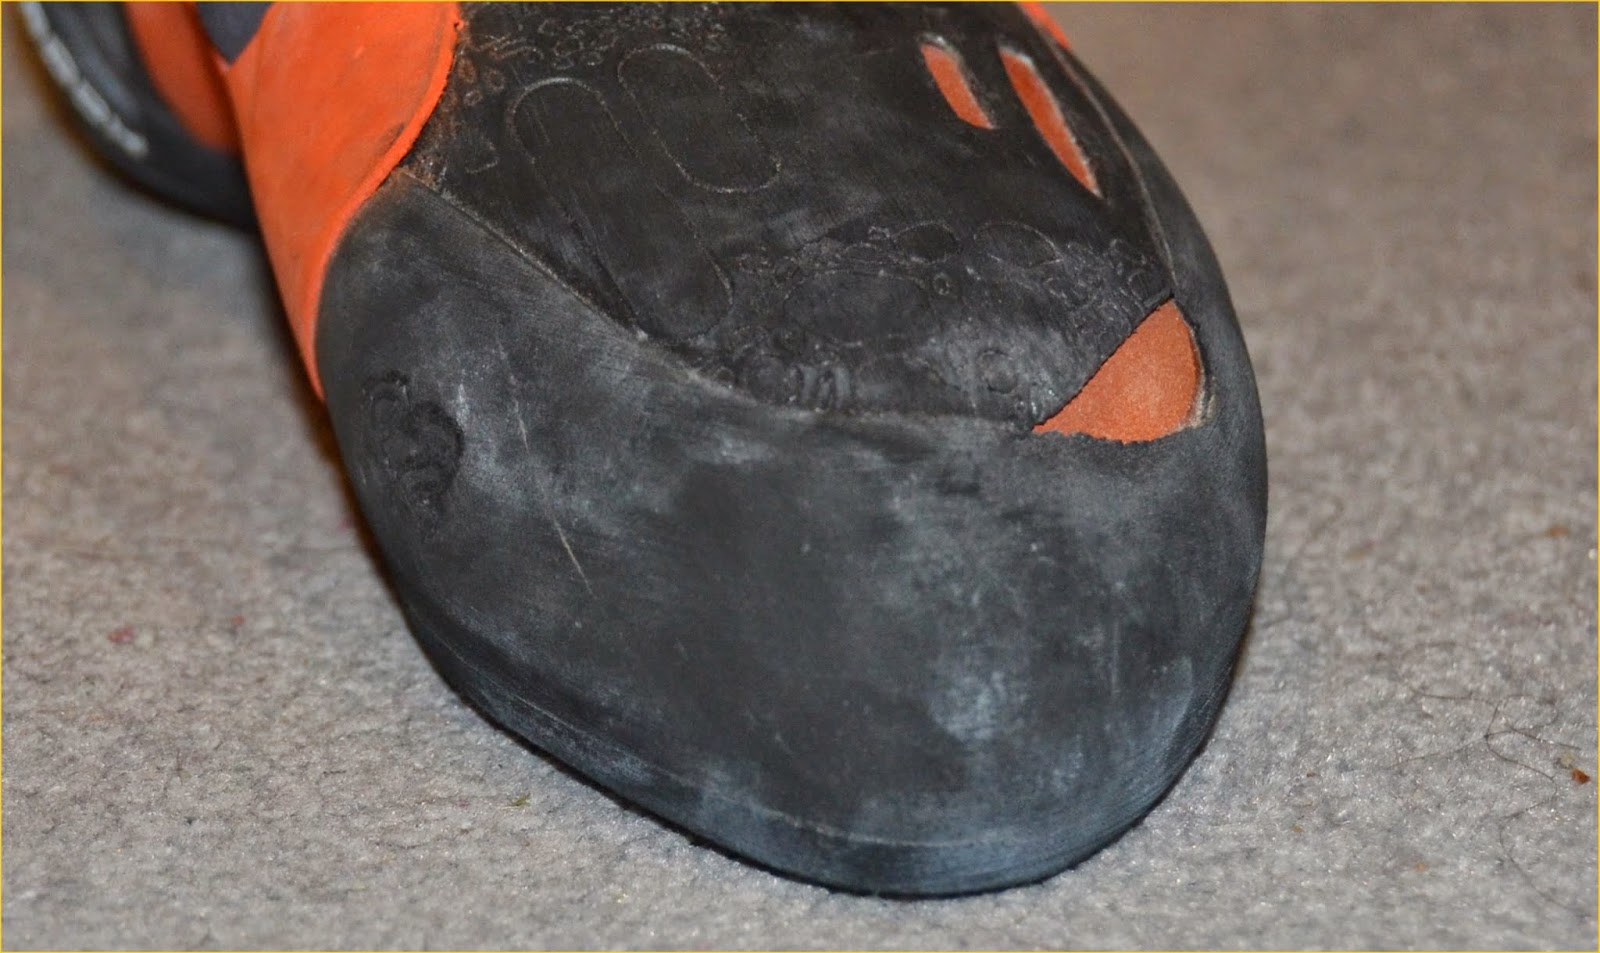 Rubber mats exeter - As You Can See From The Pictures The Top Of The Shoe Is Completely Covered In Rubber This Is Very Good For Jamming Your Toe In Cracks And For Toe Hooks